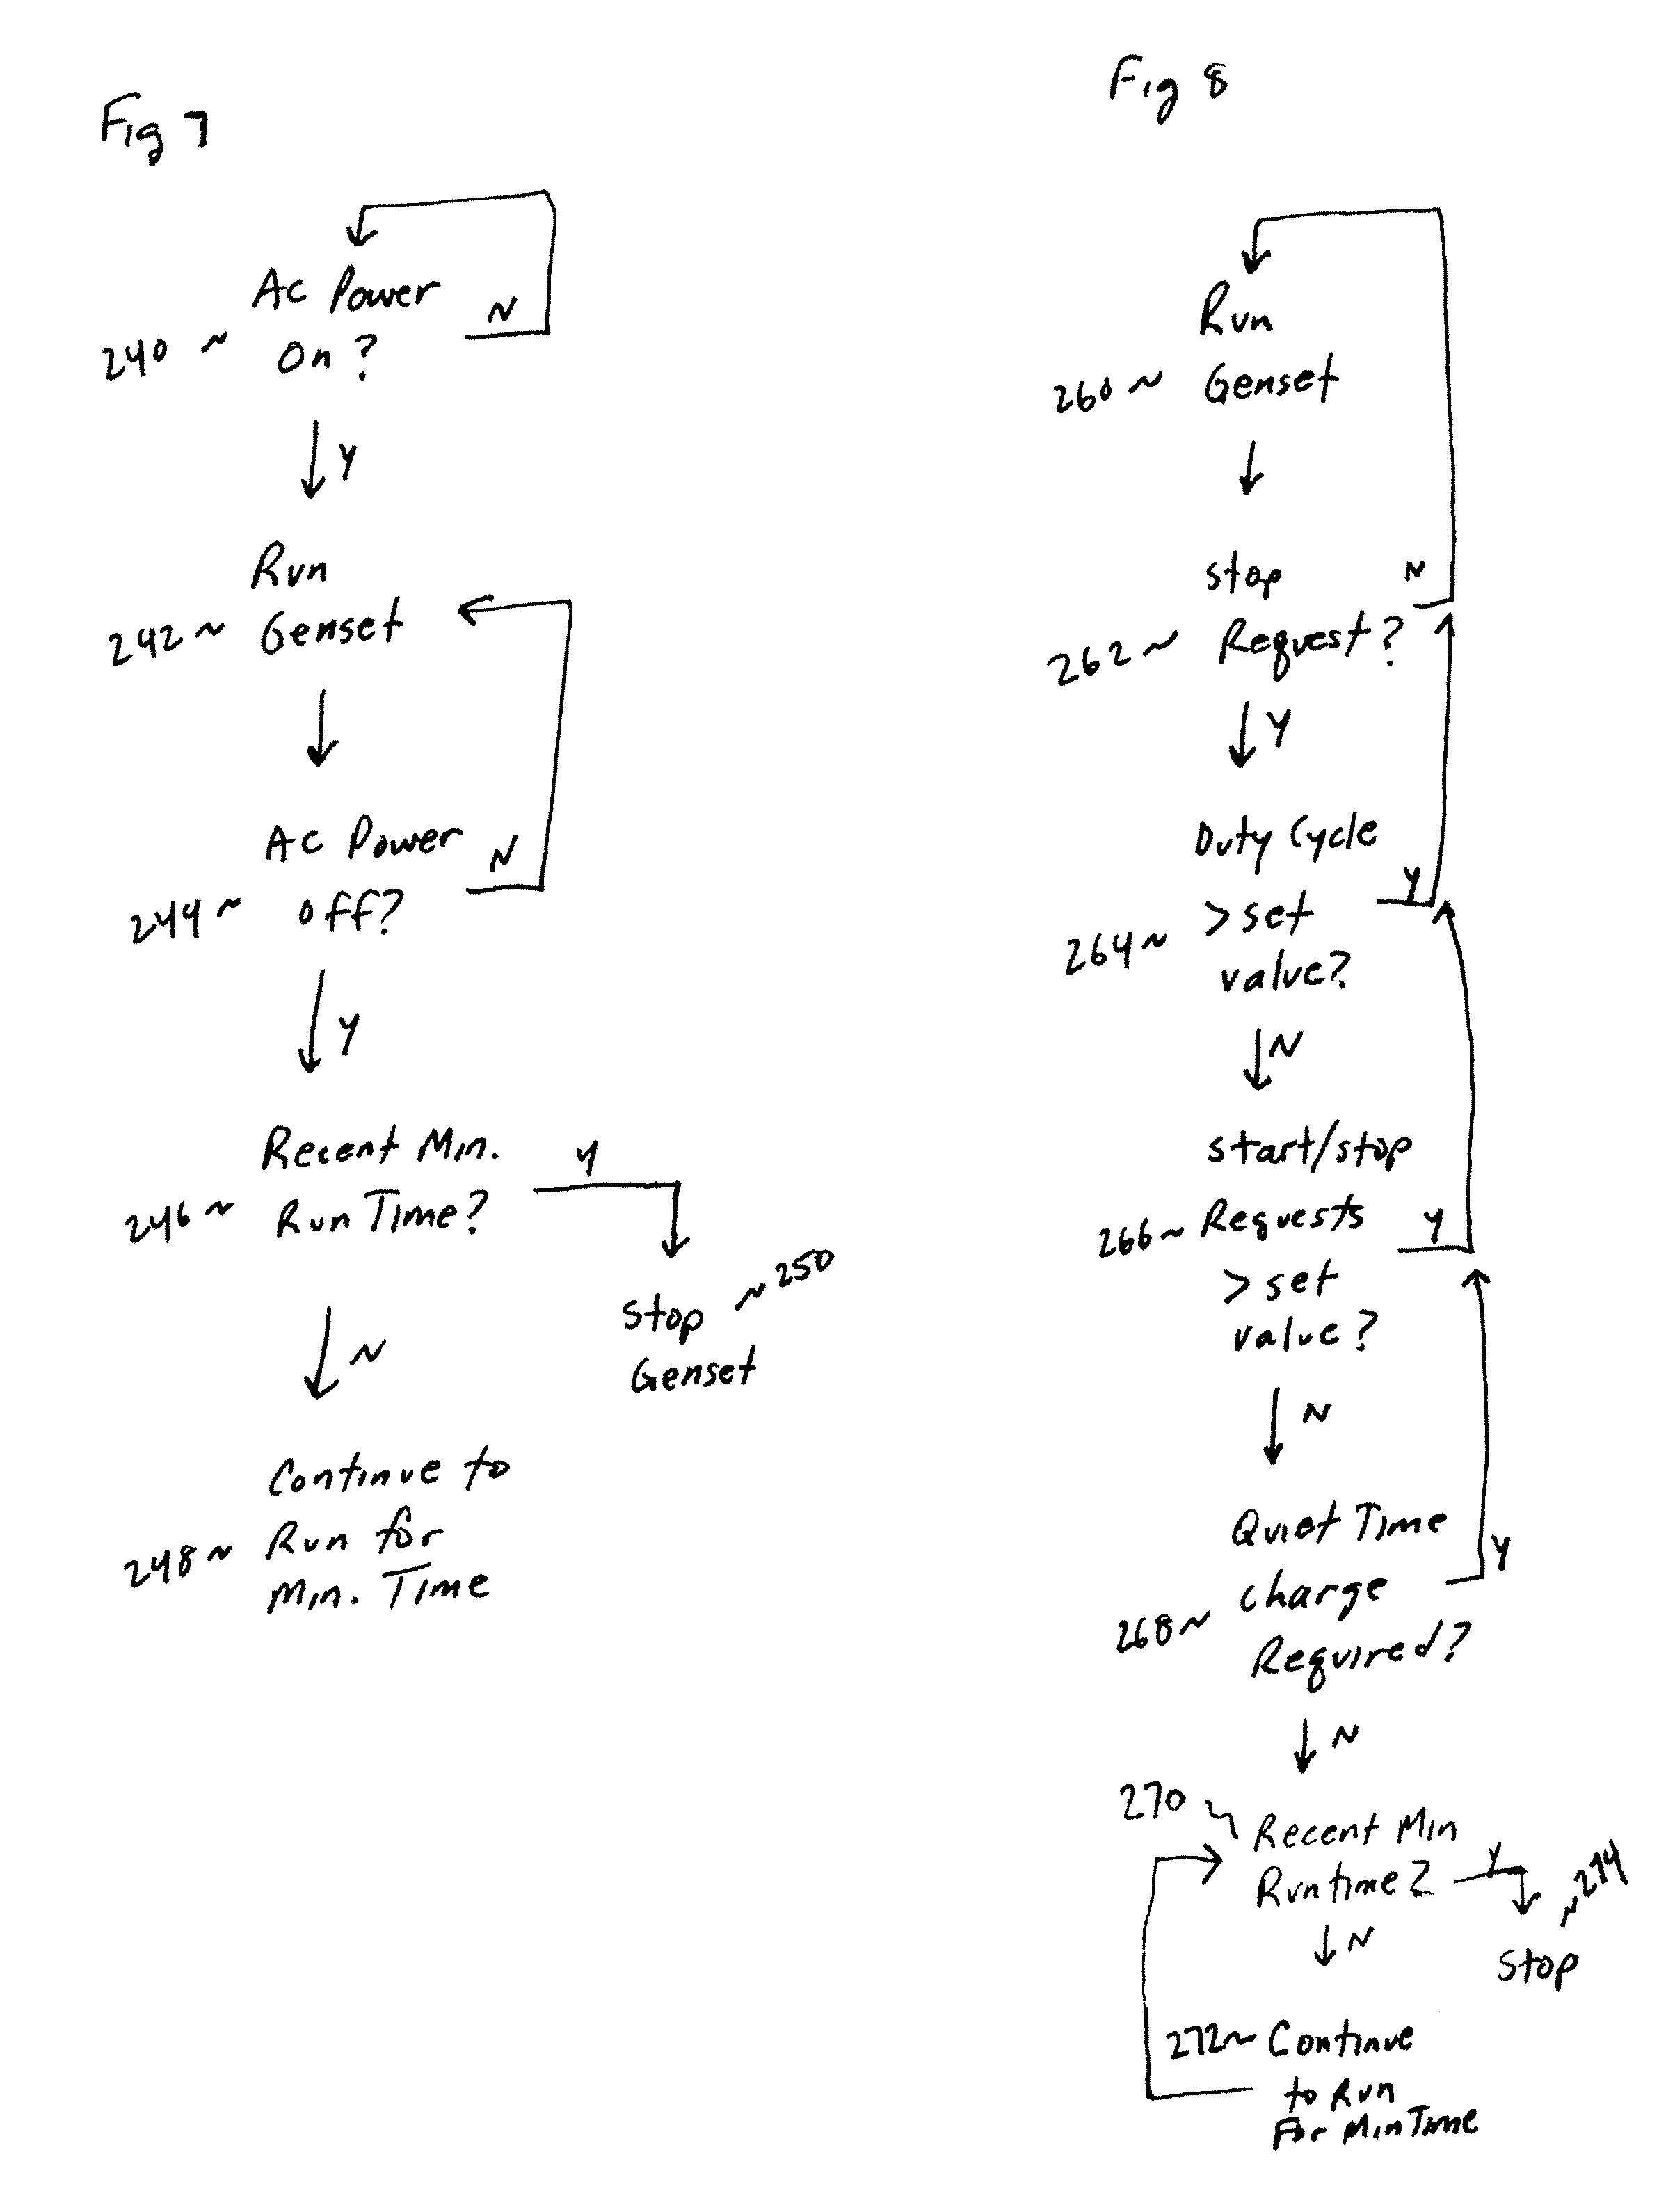 Onan Microlite 2800 Wiring Diagram 34 Images Help My Generator Runs But I Don39t Have Any Power Roadtrek Blog Us07692409 20100406 D00007 4000 Parts Free Image About